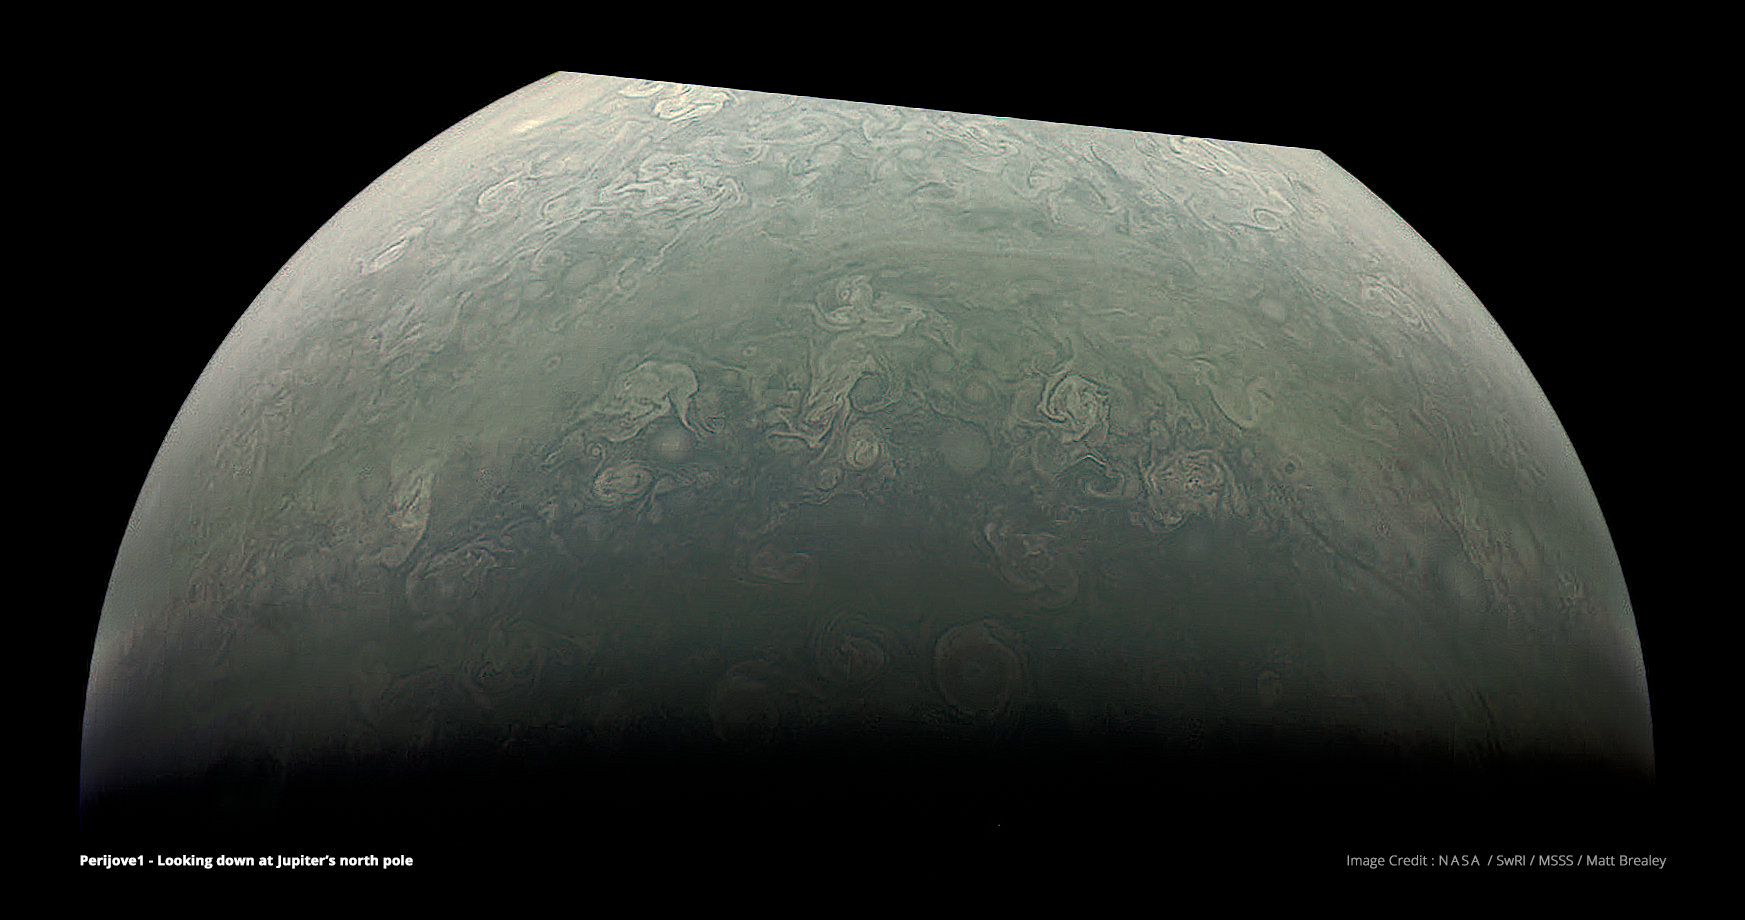 Jupiter's north pole, constructed from raw images using common Visual Effects techniques and The Foundry's Nuke compositing software. Visible compression artefacts are present in the raw data and not introduced through processing. The top section was not captured in the raw image and is therefore missing. Image Credit : NASA, SwRI, MSSS & Matt Brealey.